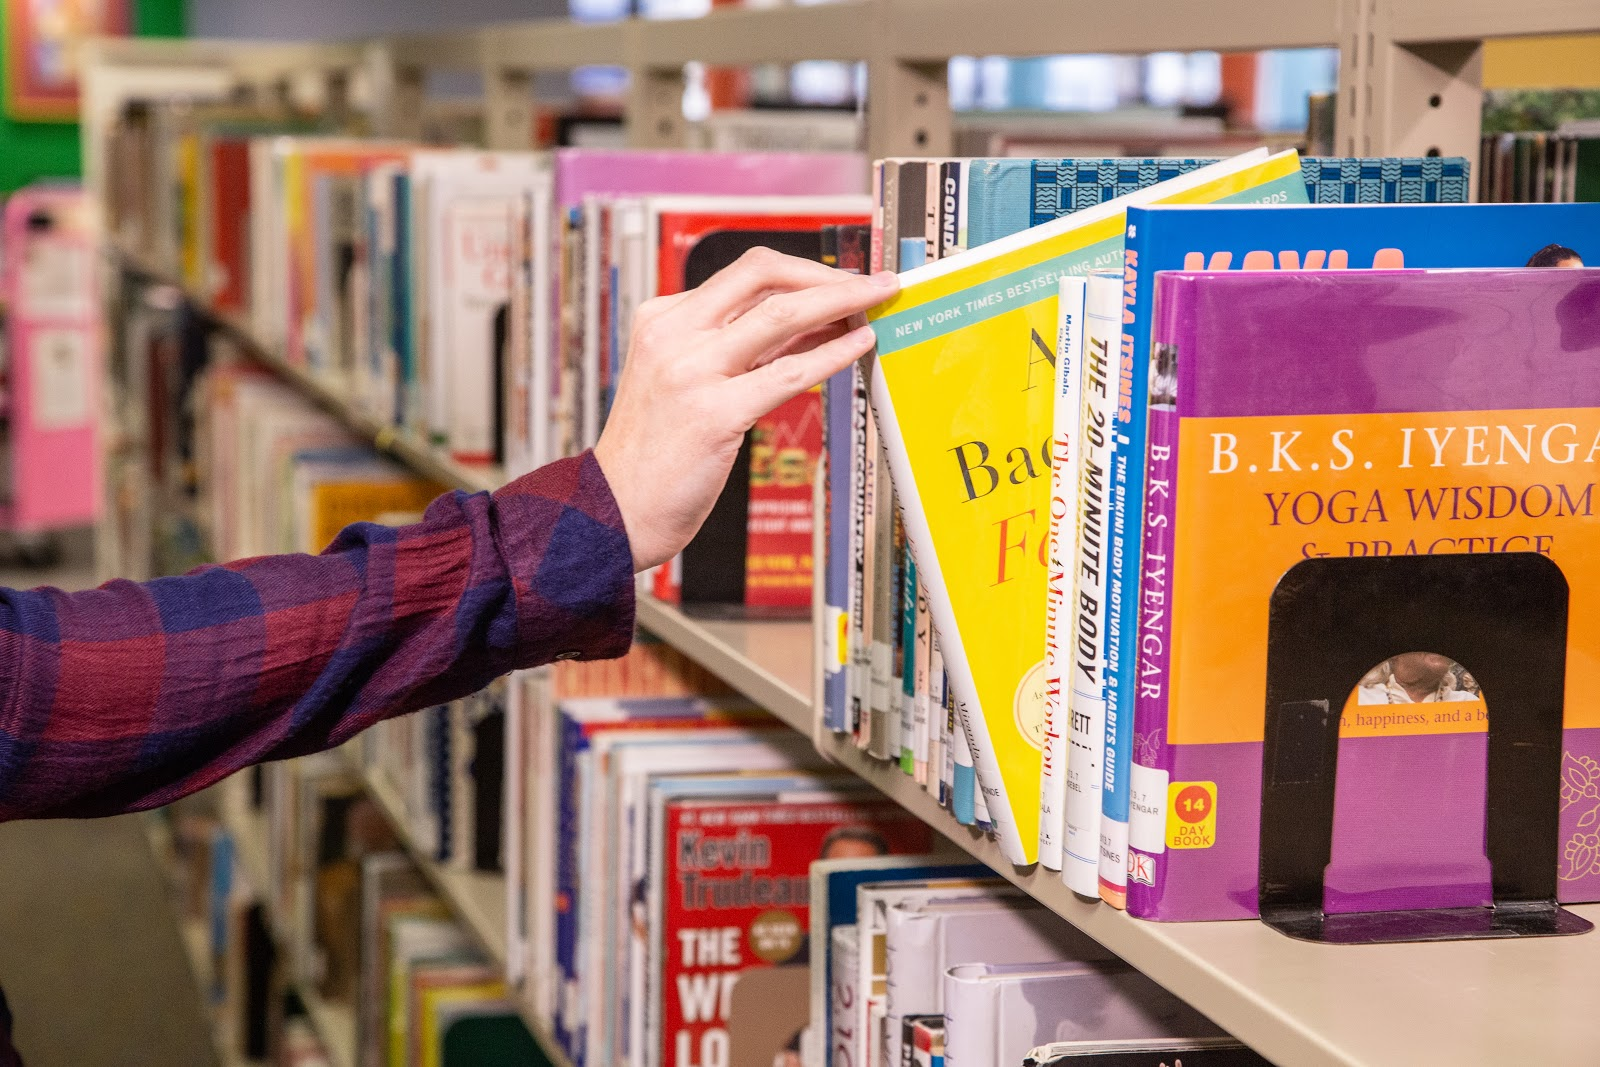 Person pulling book off library shelf